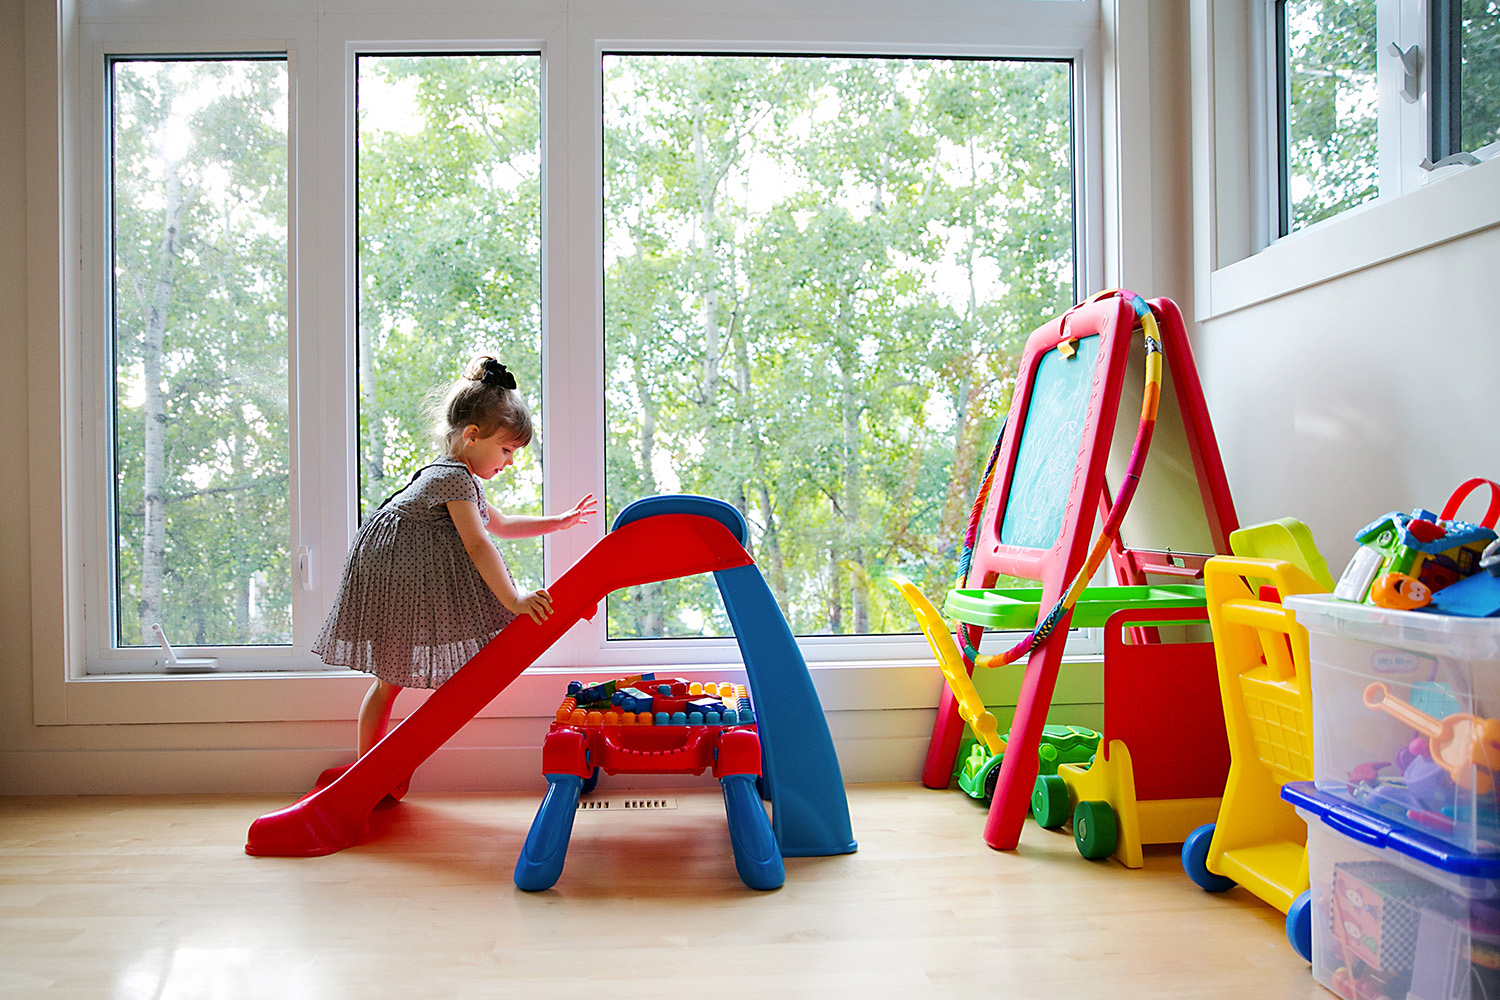 Toddler playing in her colorful playroom by Dana Pugh